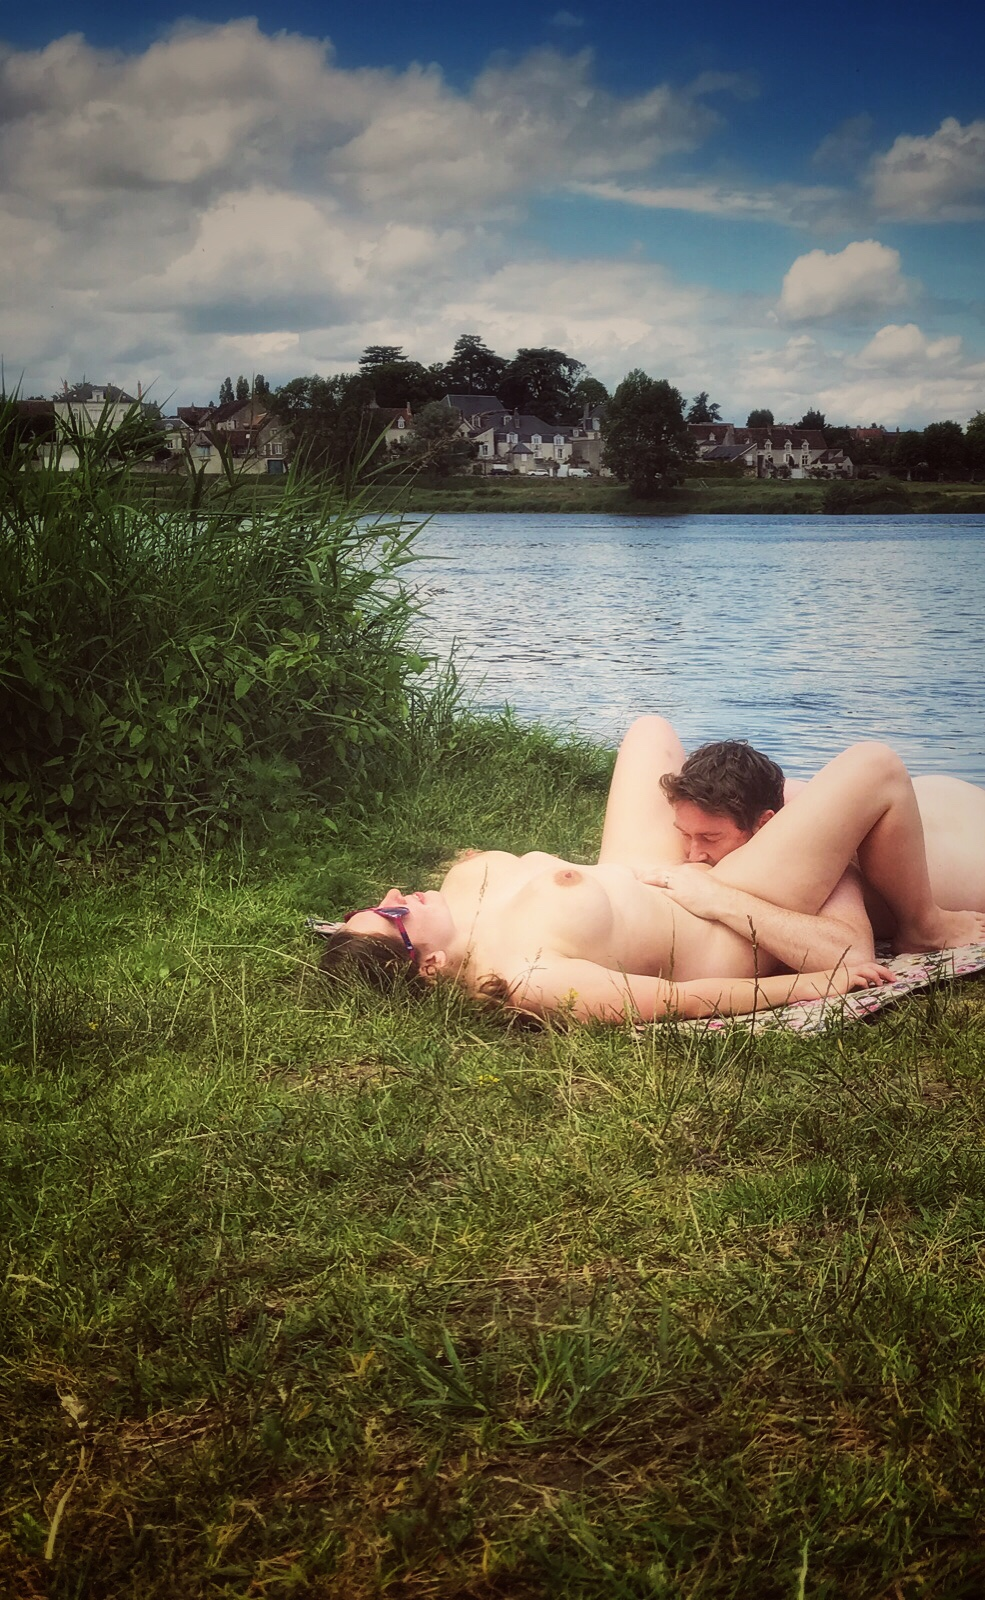 A photo of EA and I, lying naked on a picnic blanket by a river. I am on my back, he is going down on me